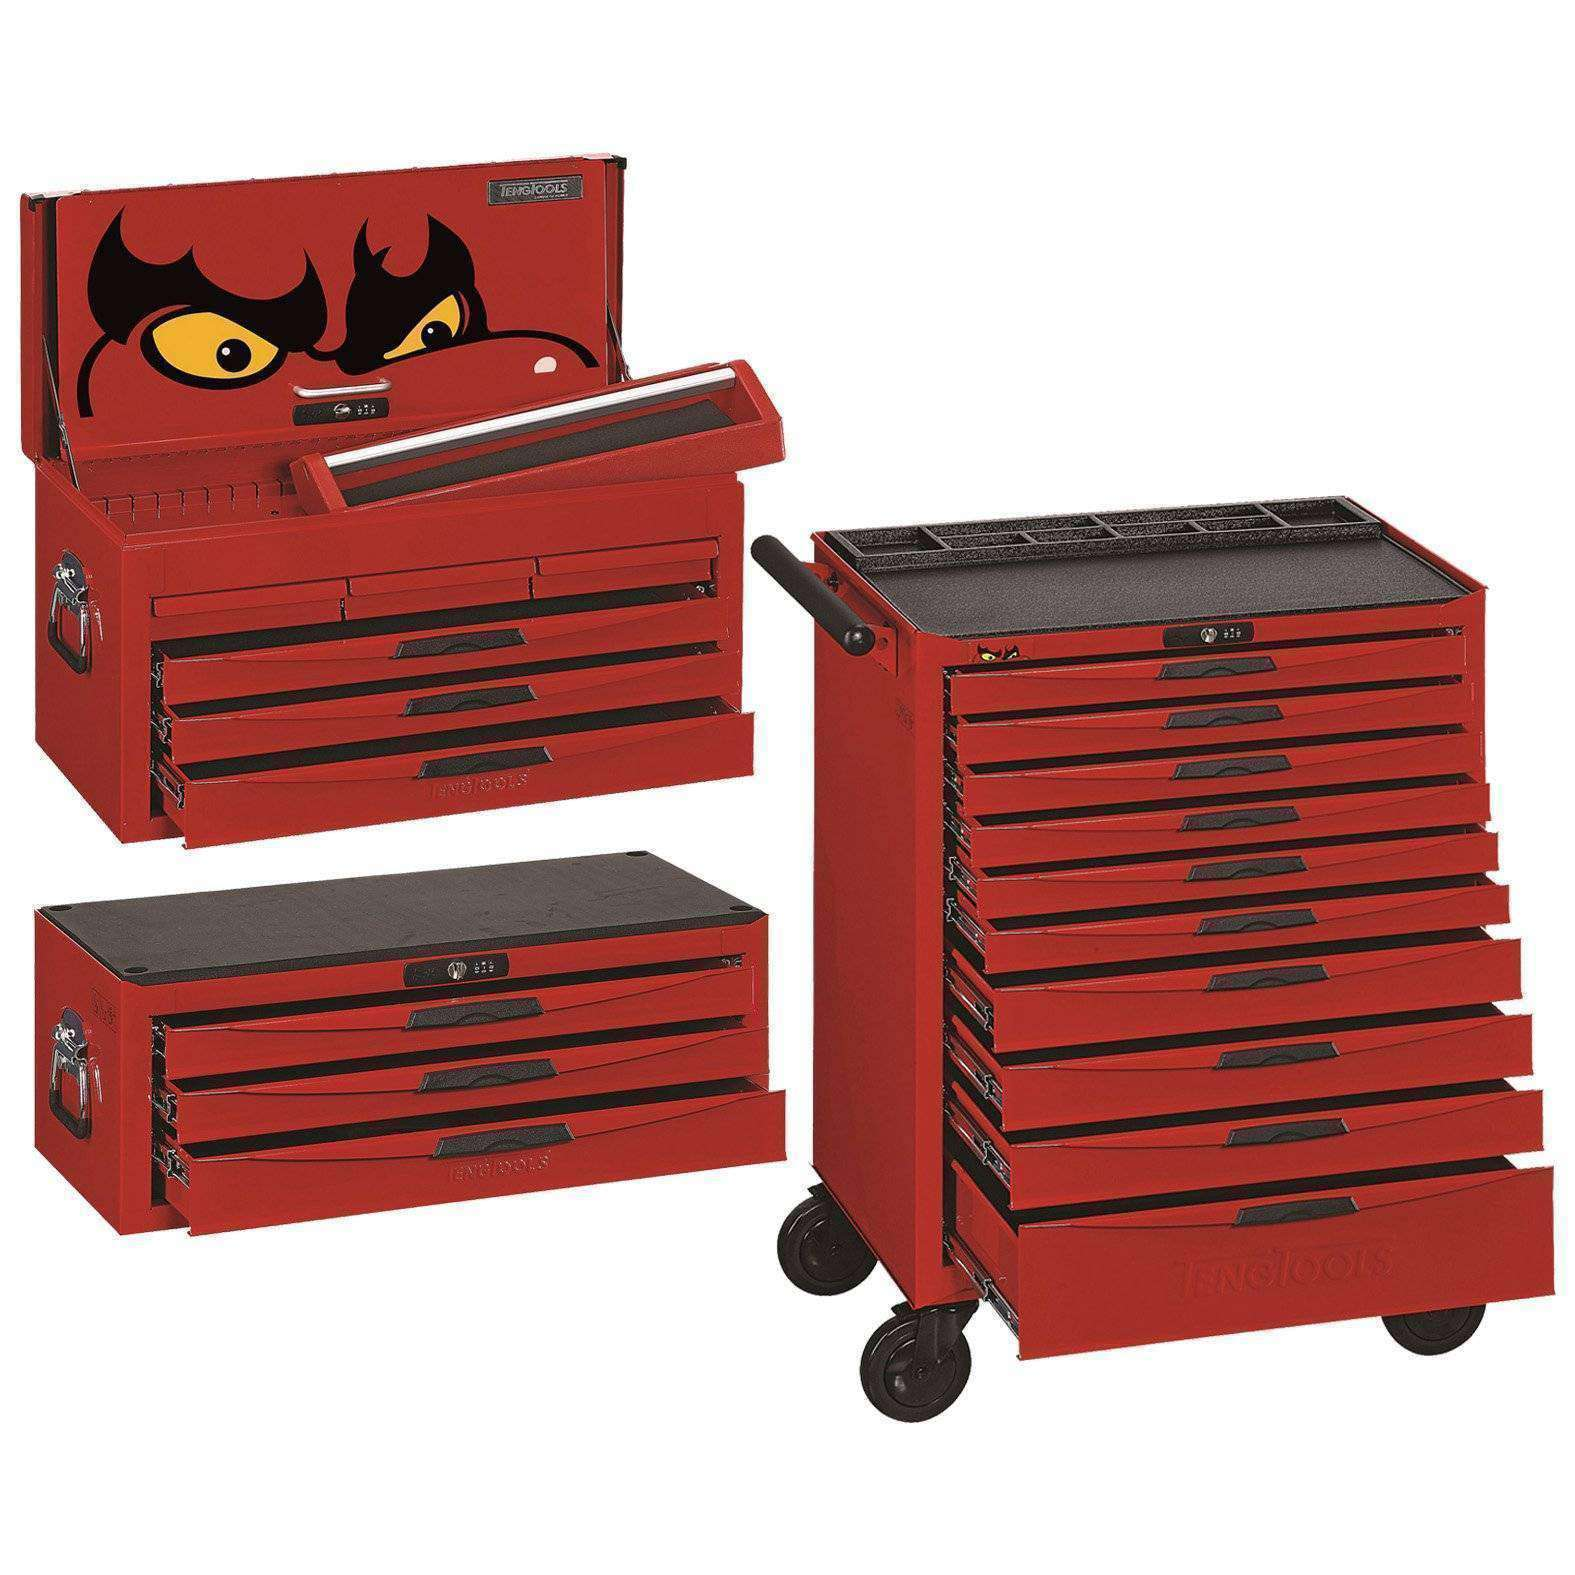 Teng Tools 8 Series 10 Drawer Roller Cabinet, 3 Drawer Middle and 6 Drawer Top Box - Teng Tools USA